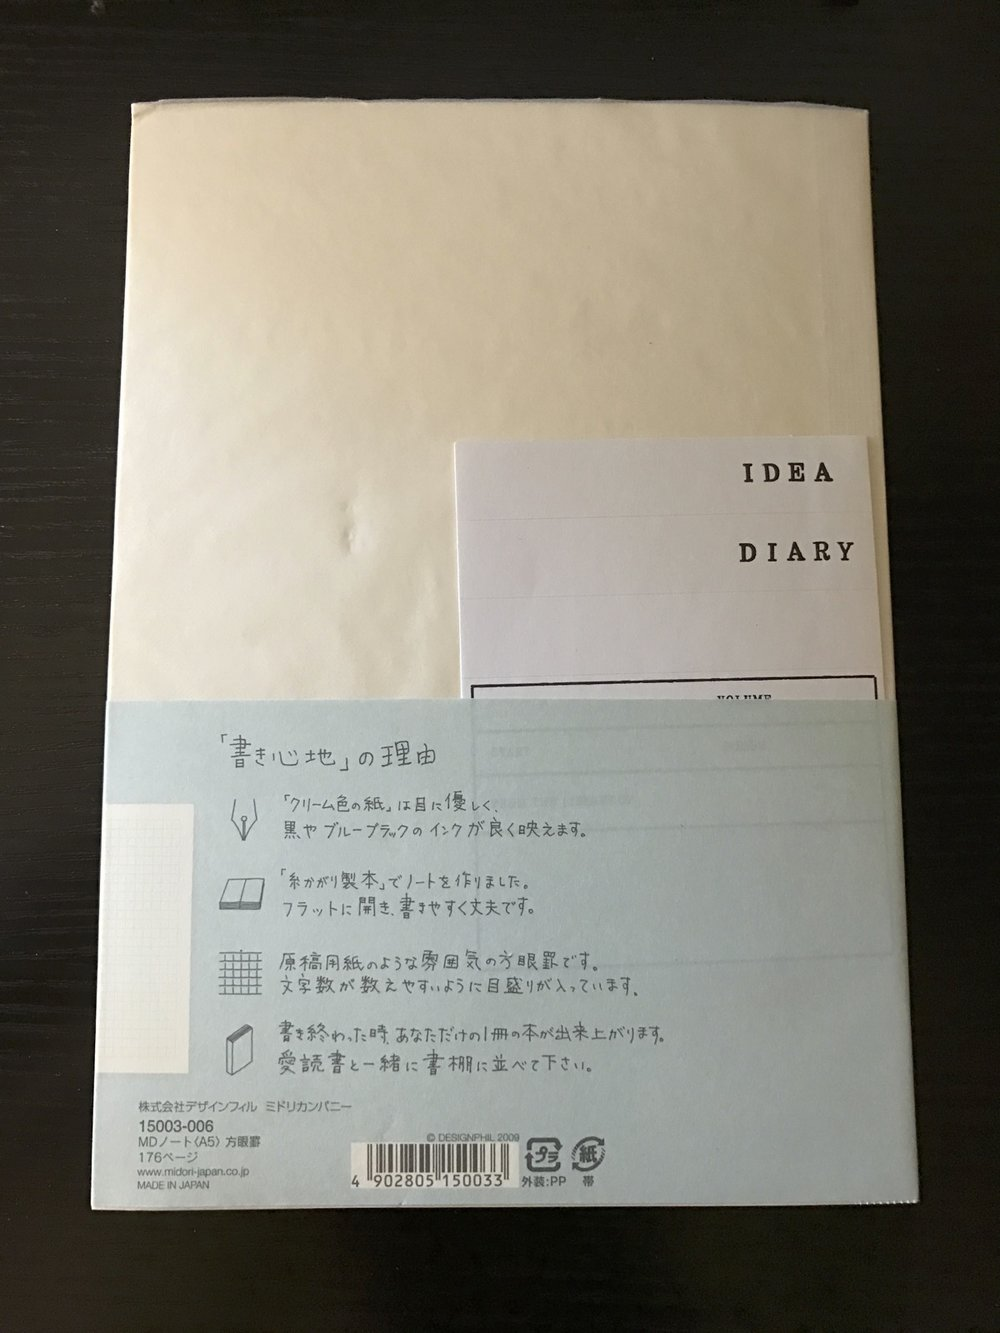 The Midori MD notebook stood out as unique among all those tested (and in general, in my experience).